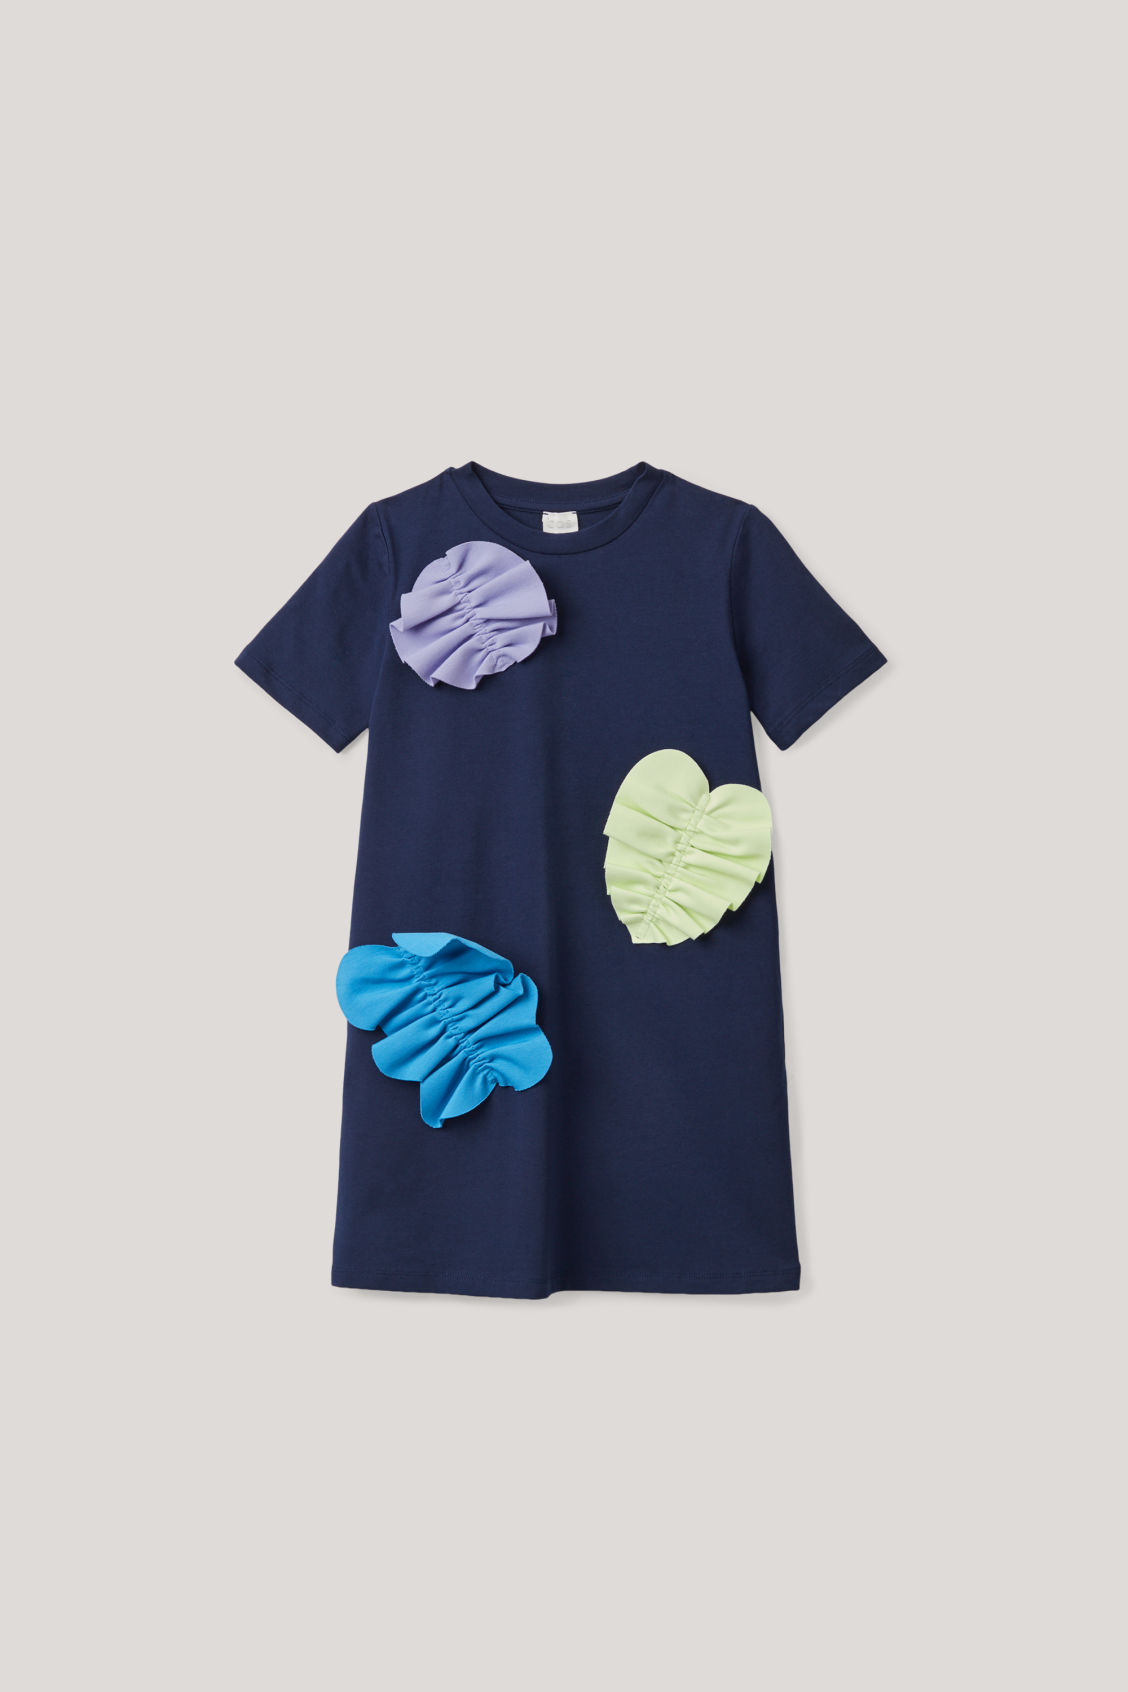 Cos Kids' Ruched-applique Dress In Blue